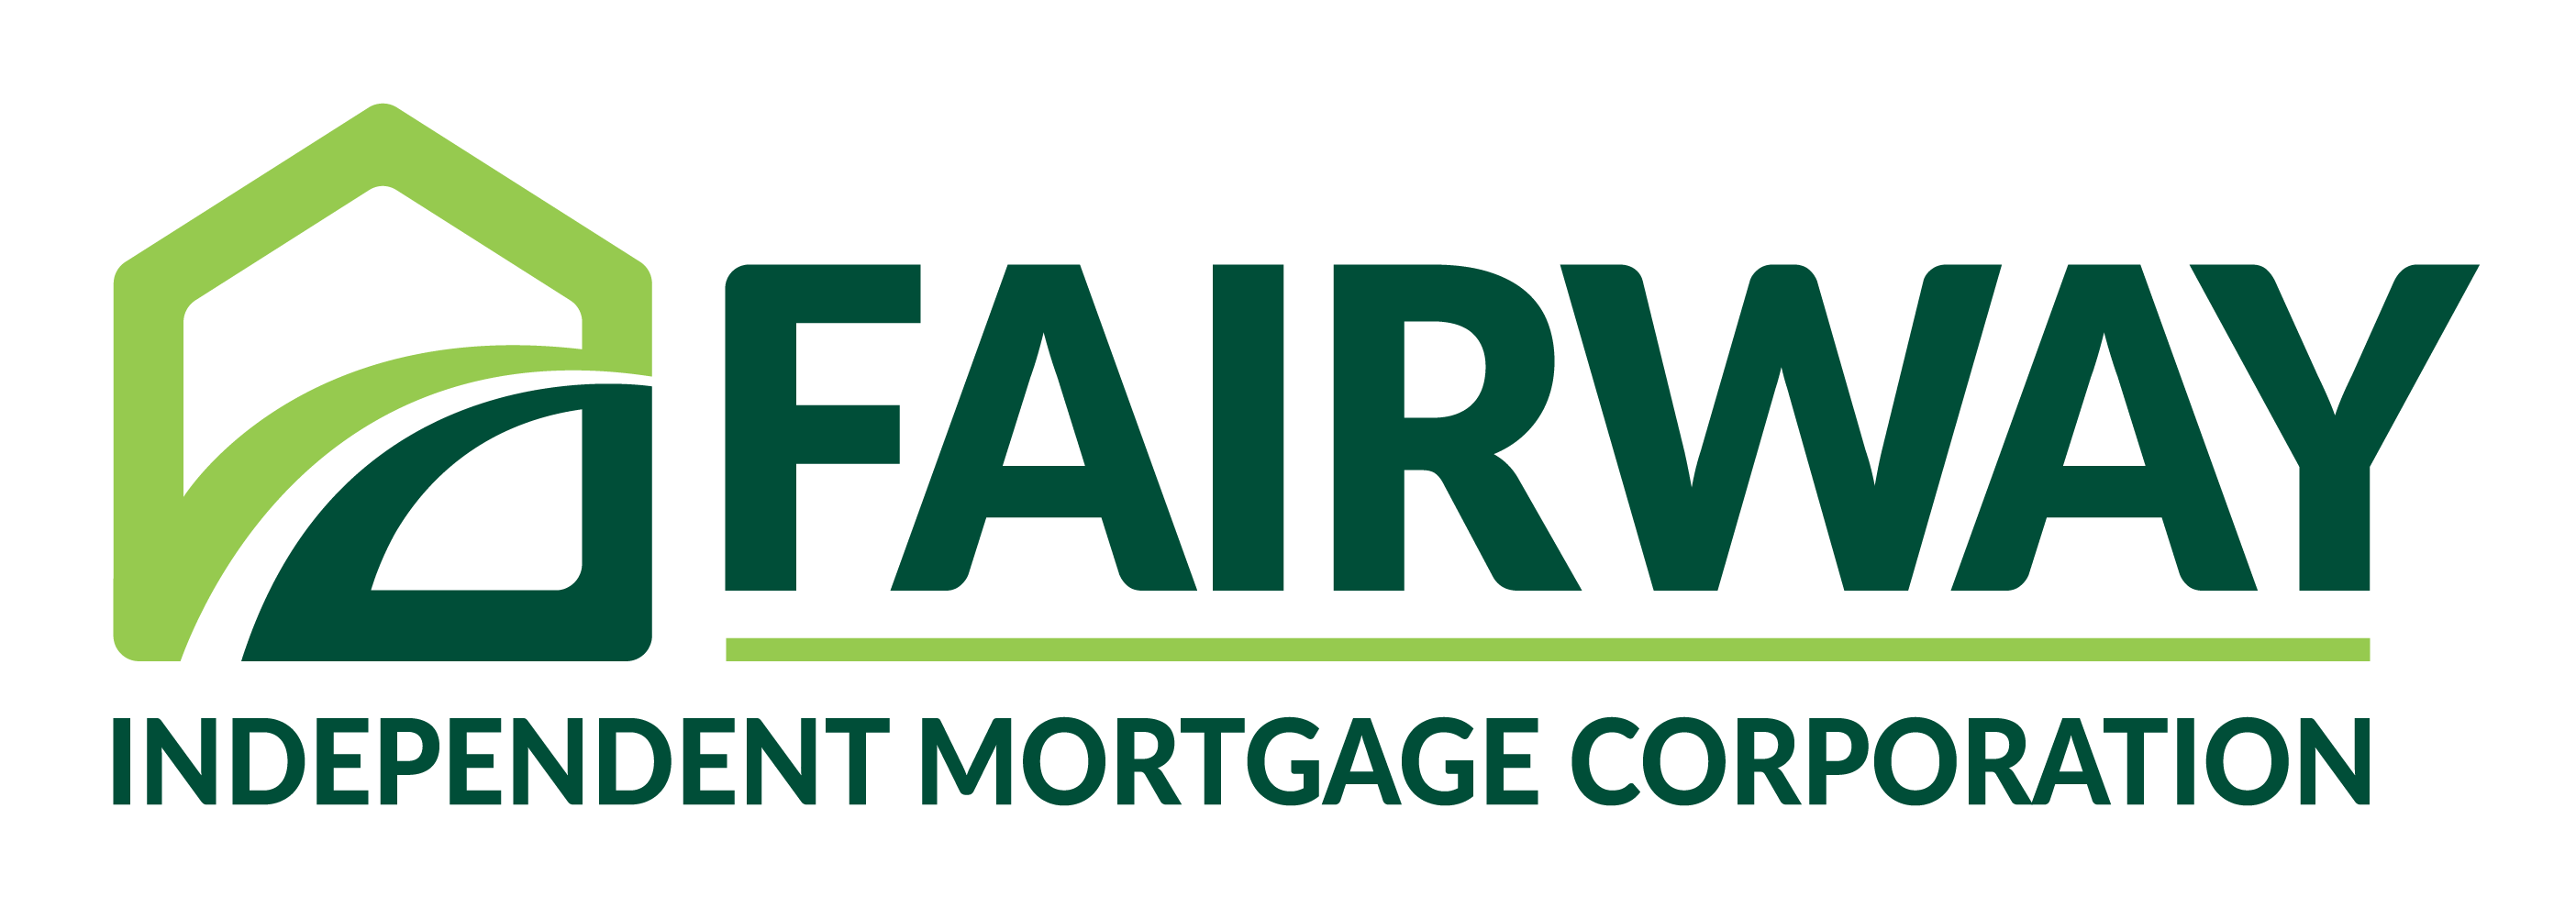 Fairway Independent Mortgage Company